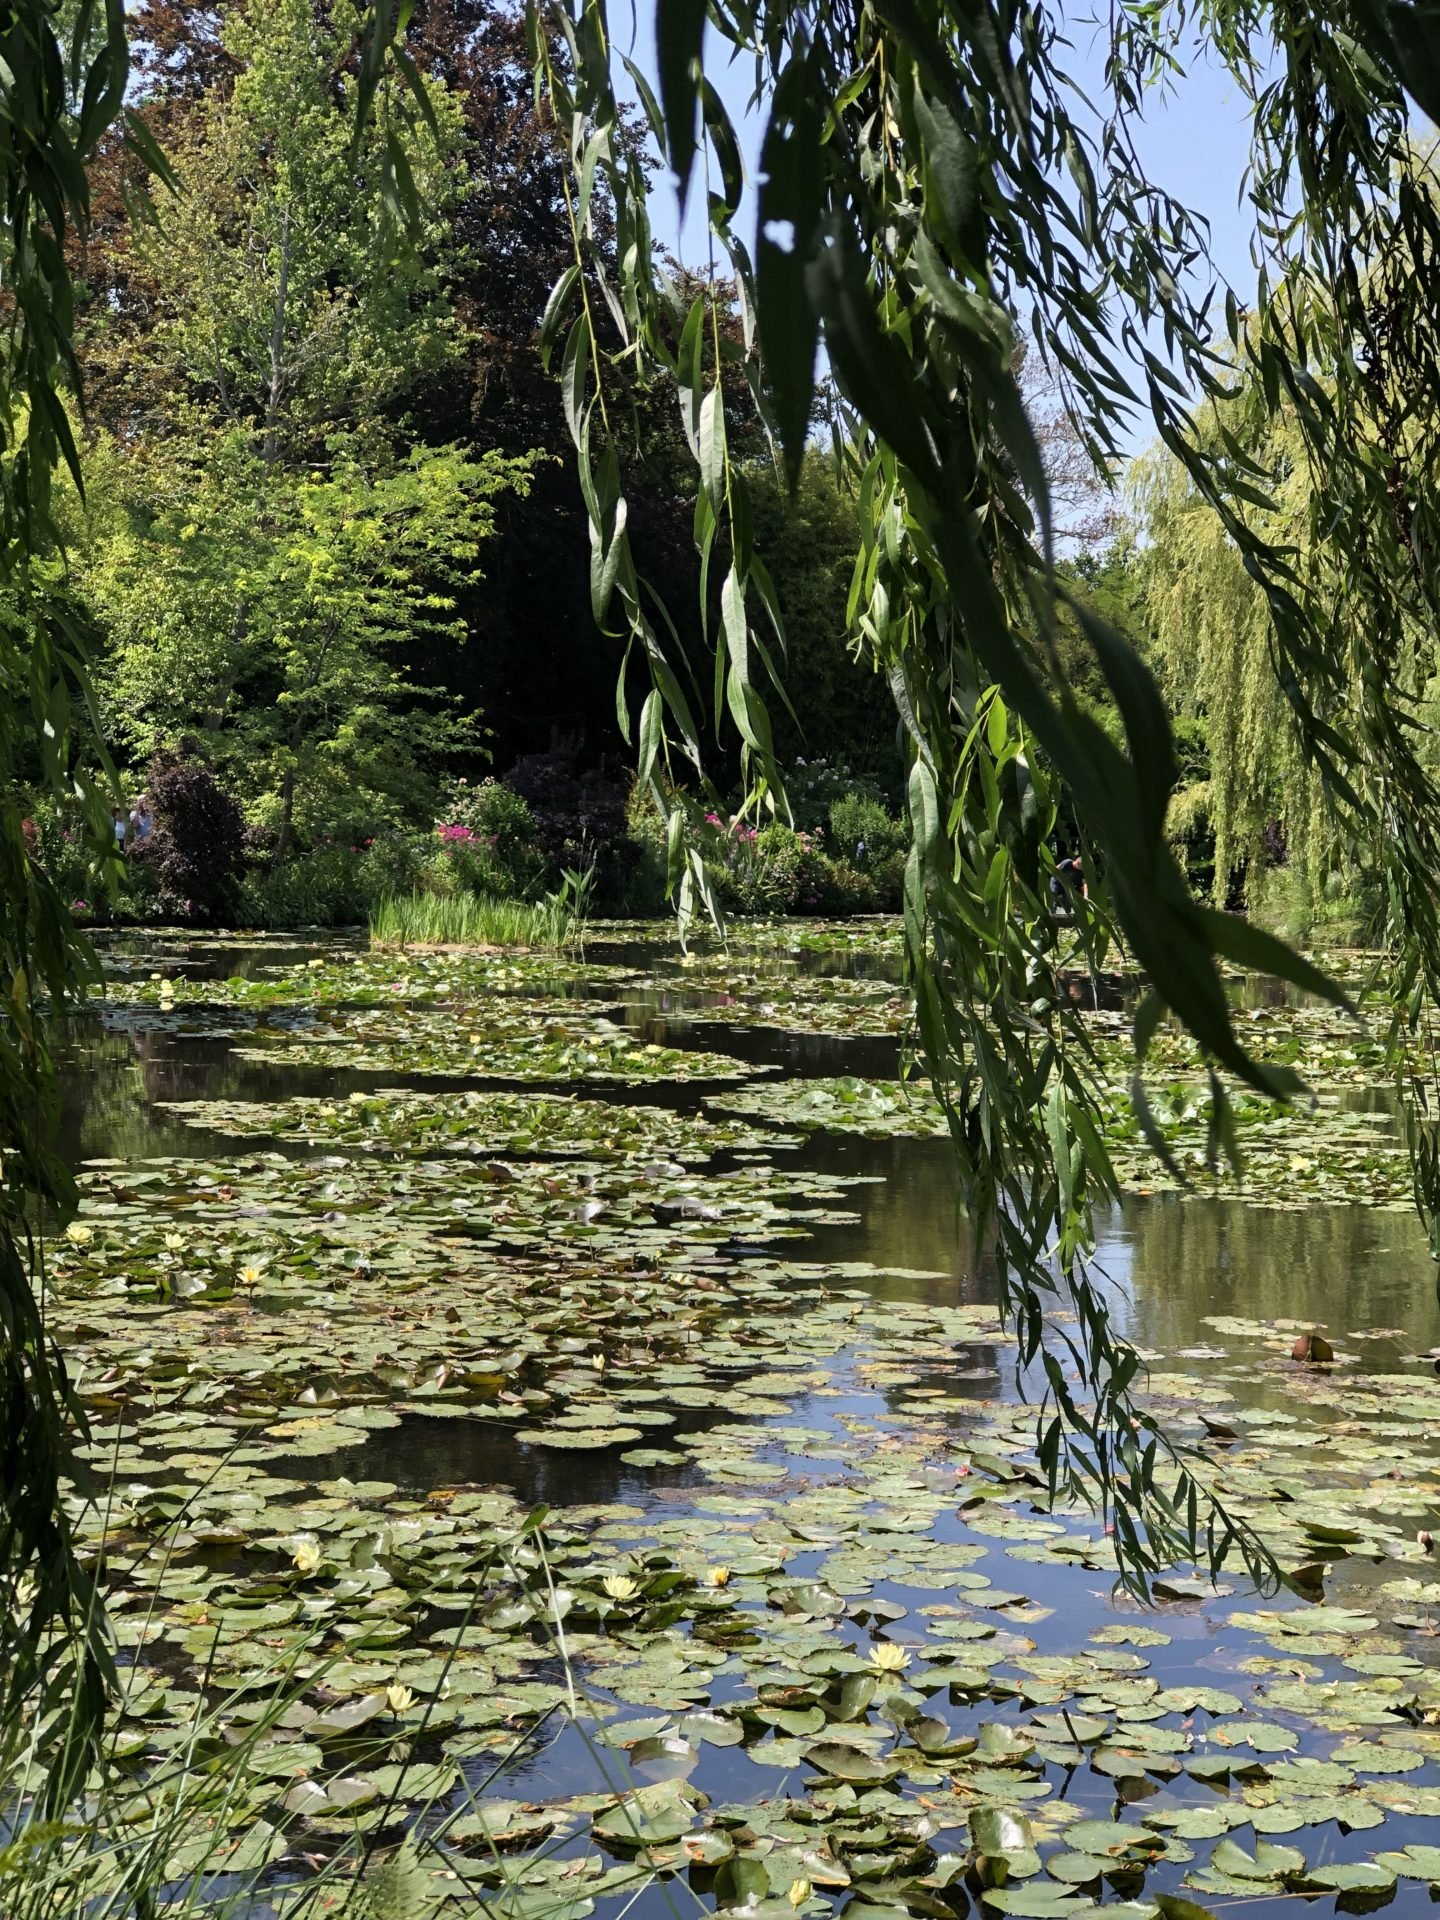 The willow tree that dangles over the pond in Claude Monet's Water lily Garden